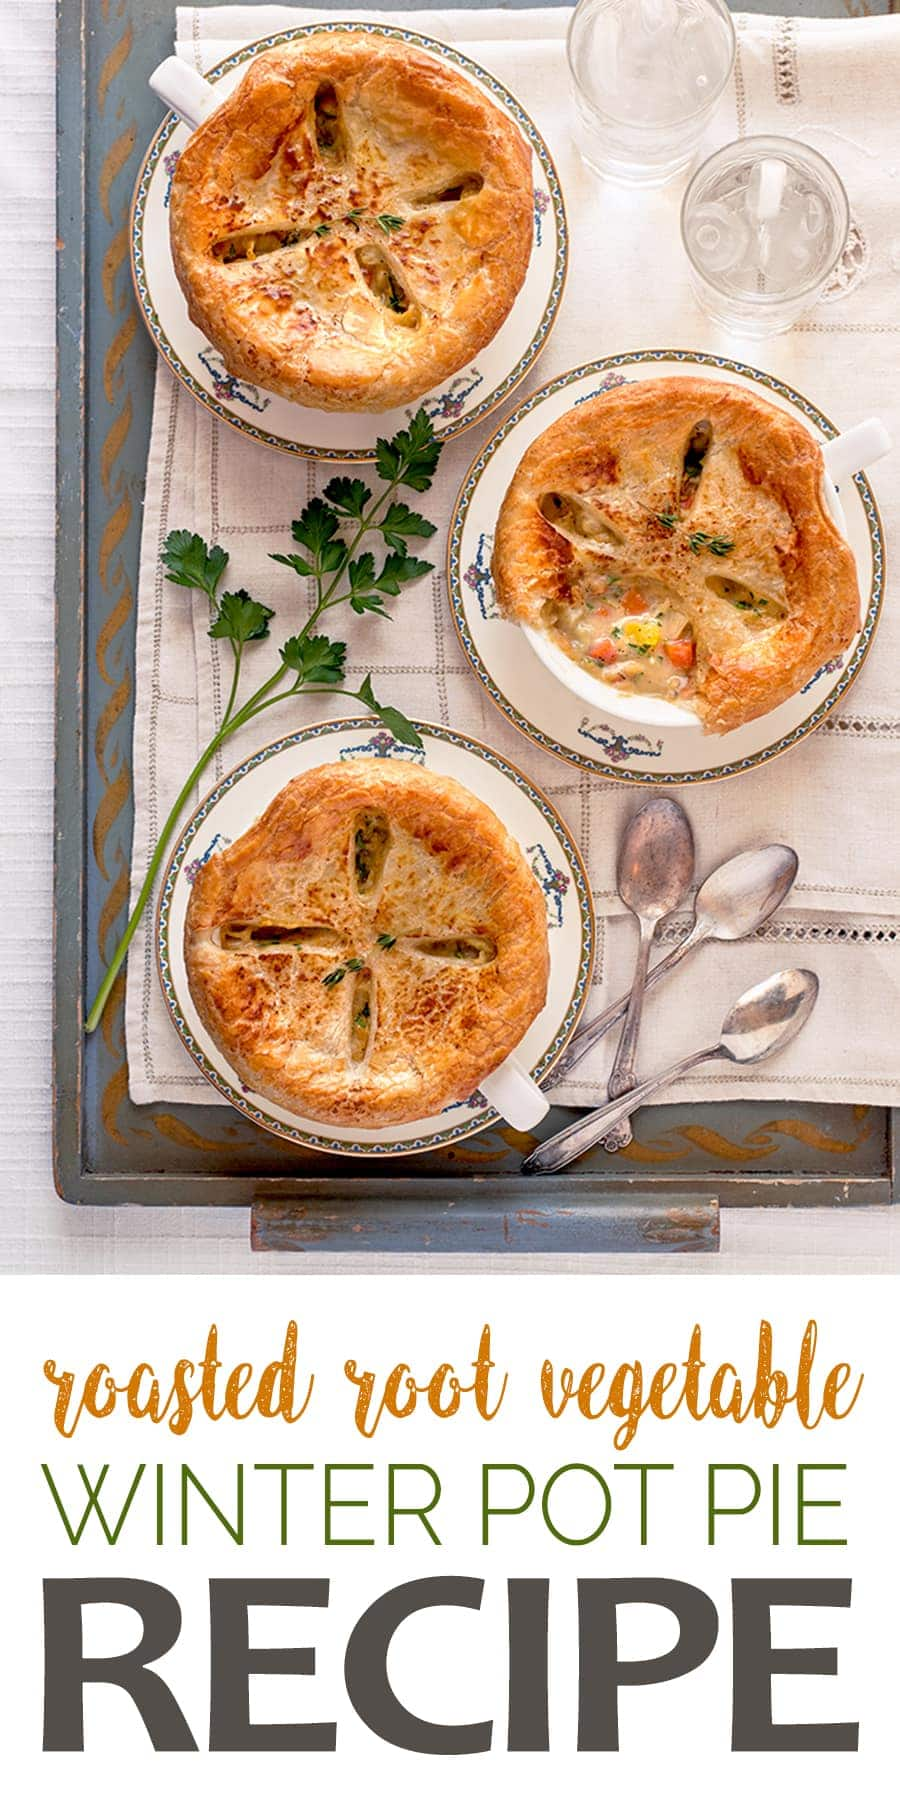 Roasted Root Vegetable Pot Pie Recipe - Roasted Root Vegetable Pot Pies